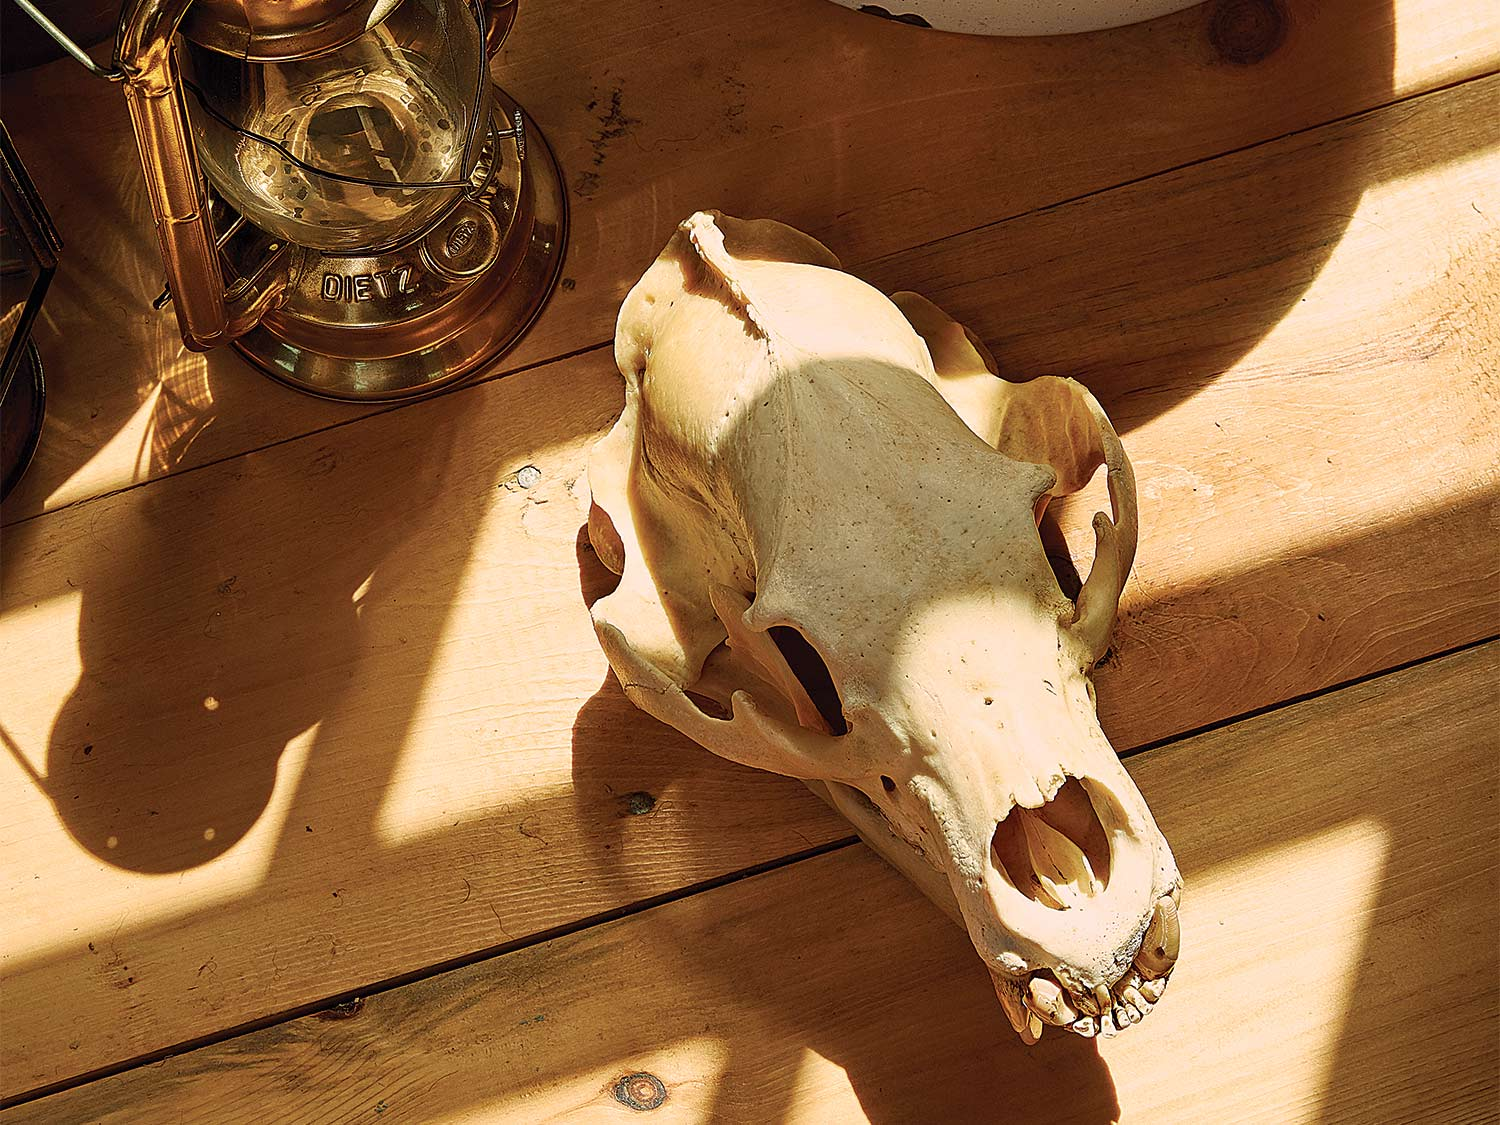 An animal skull on a wooden floor next to a old oil lamp.